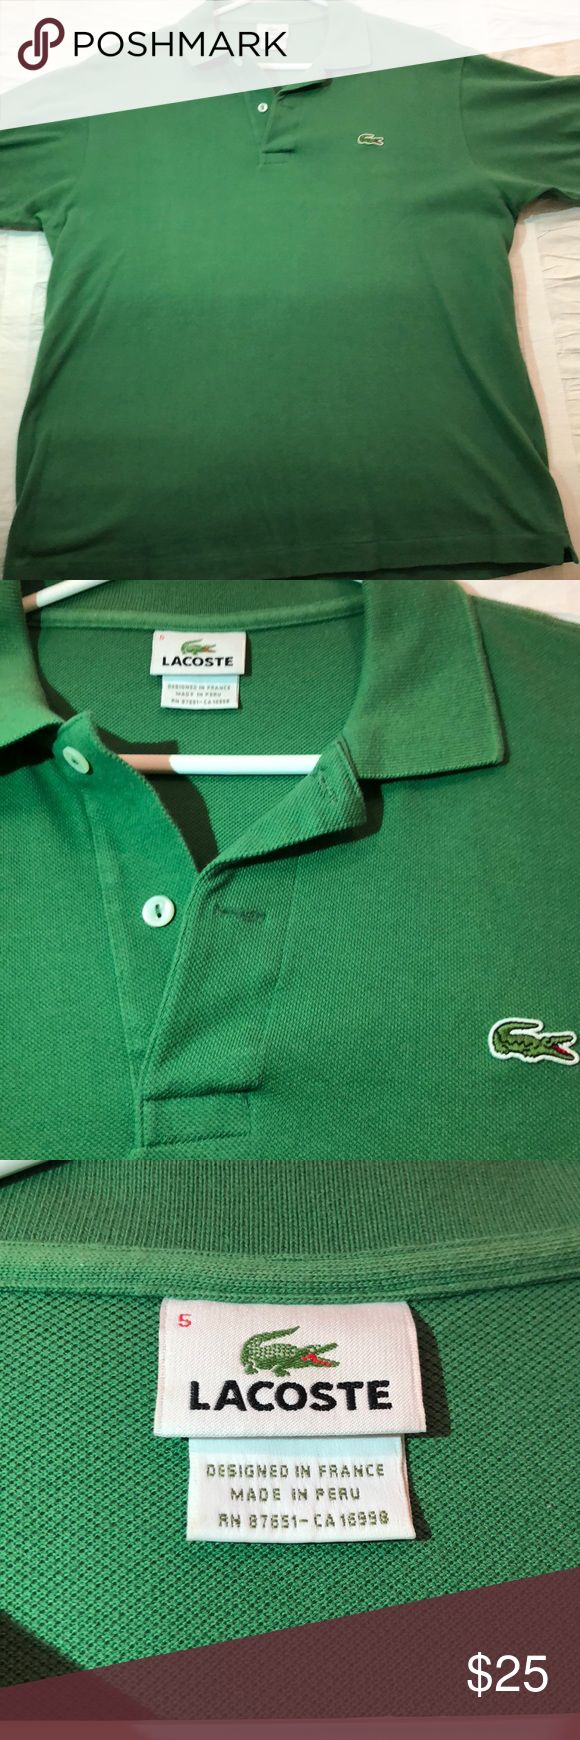 Men's Lacoste Short Sleeve Polo Shirt Classic green Lacoste polo shirt. Perfect condition. Lacoste Shirts Polos